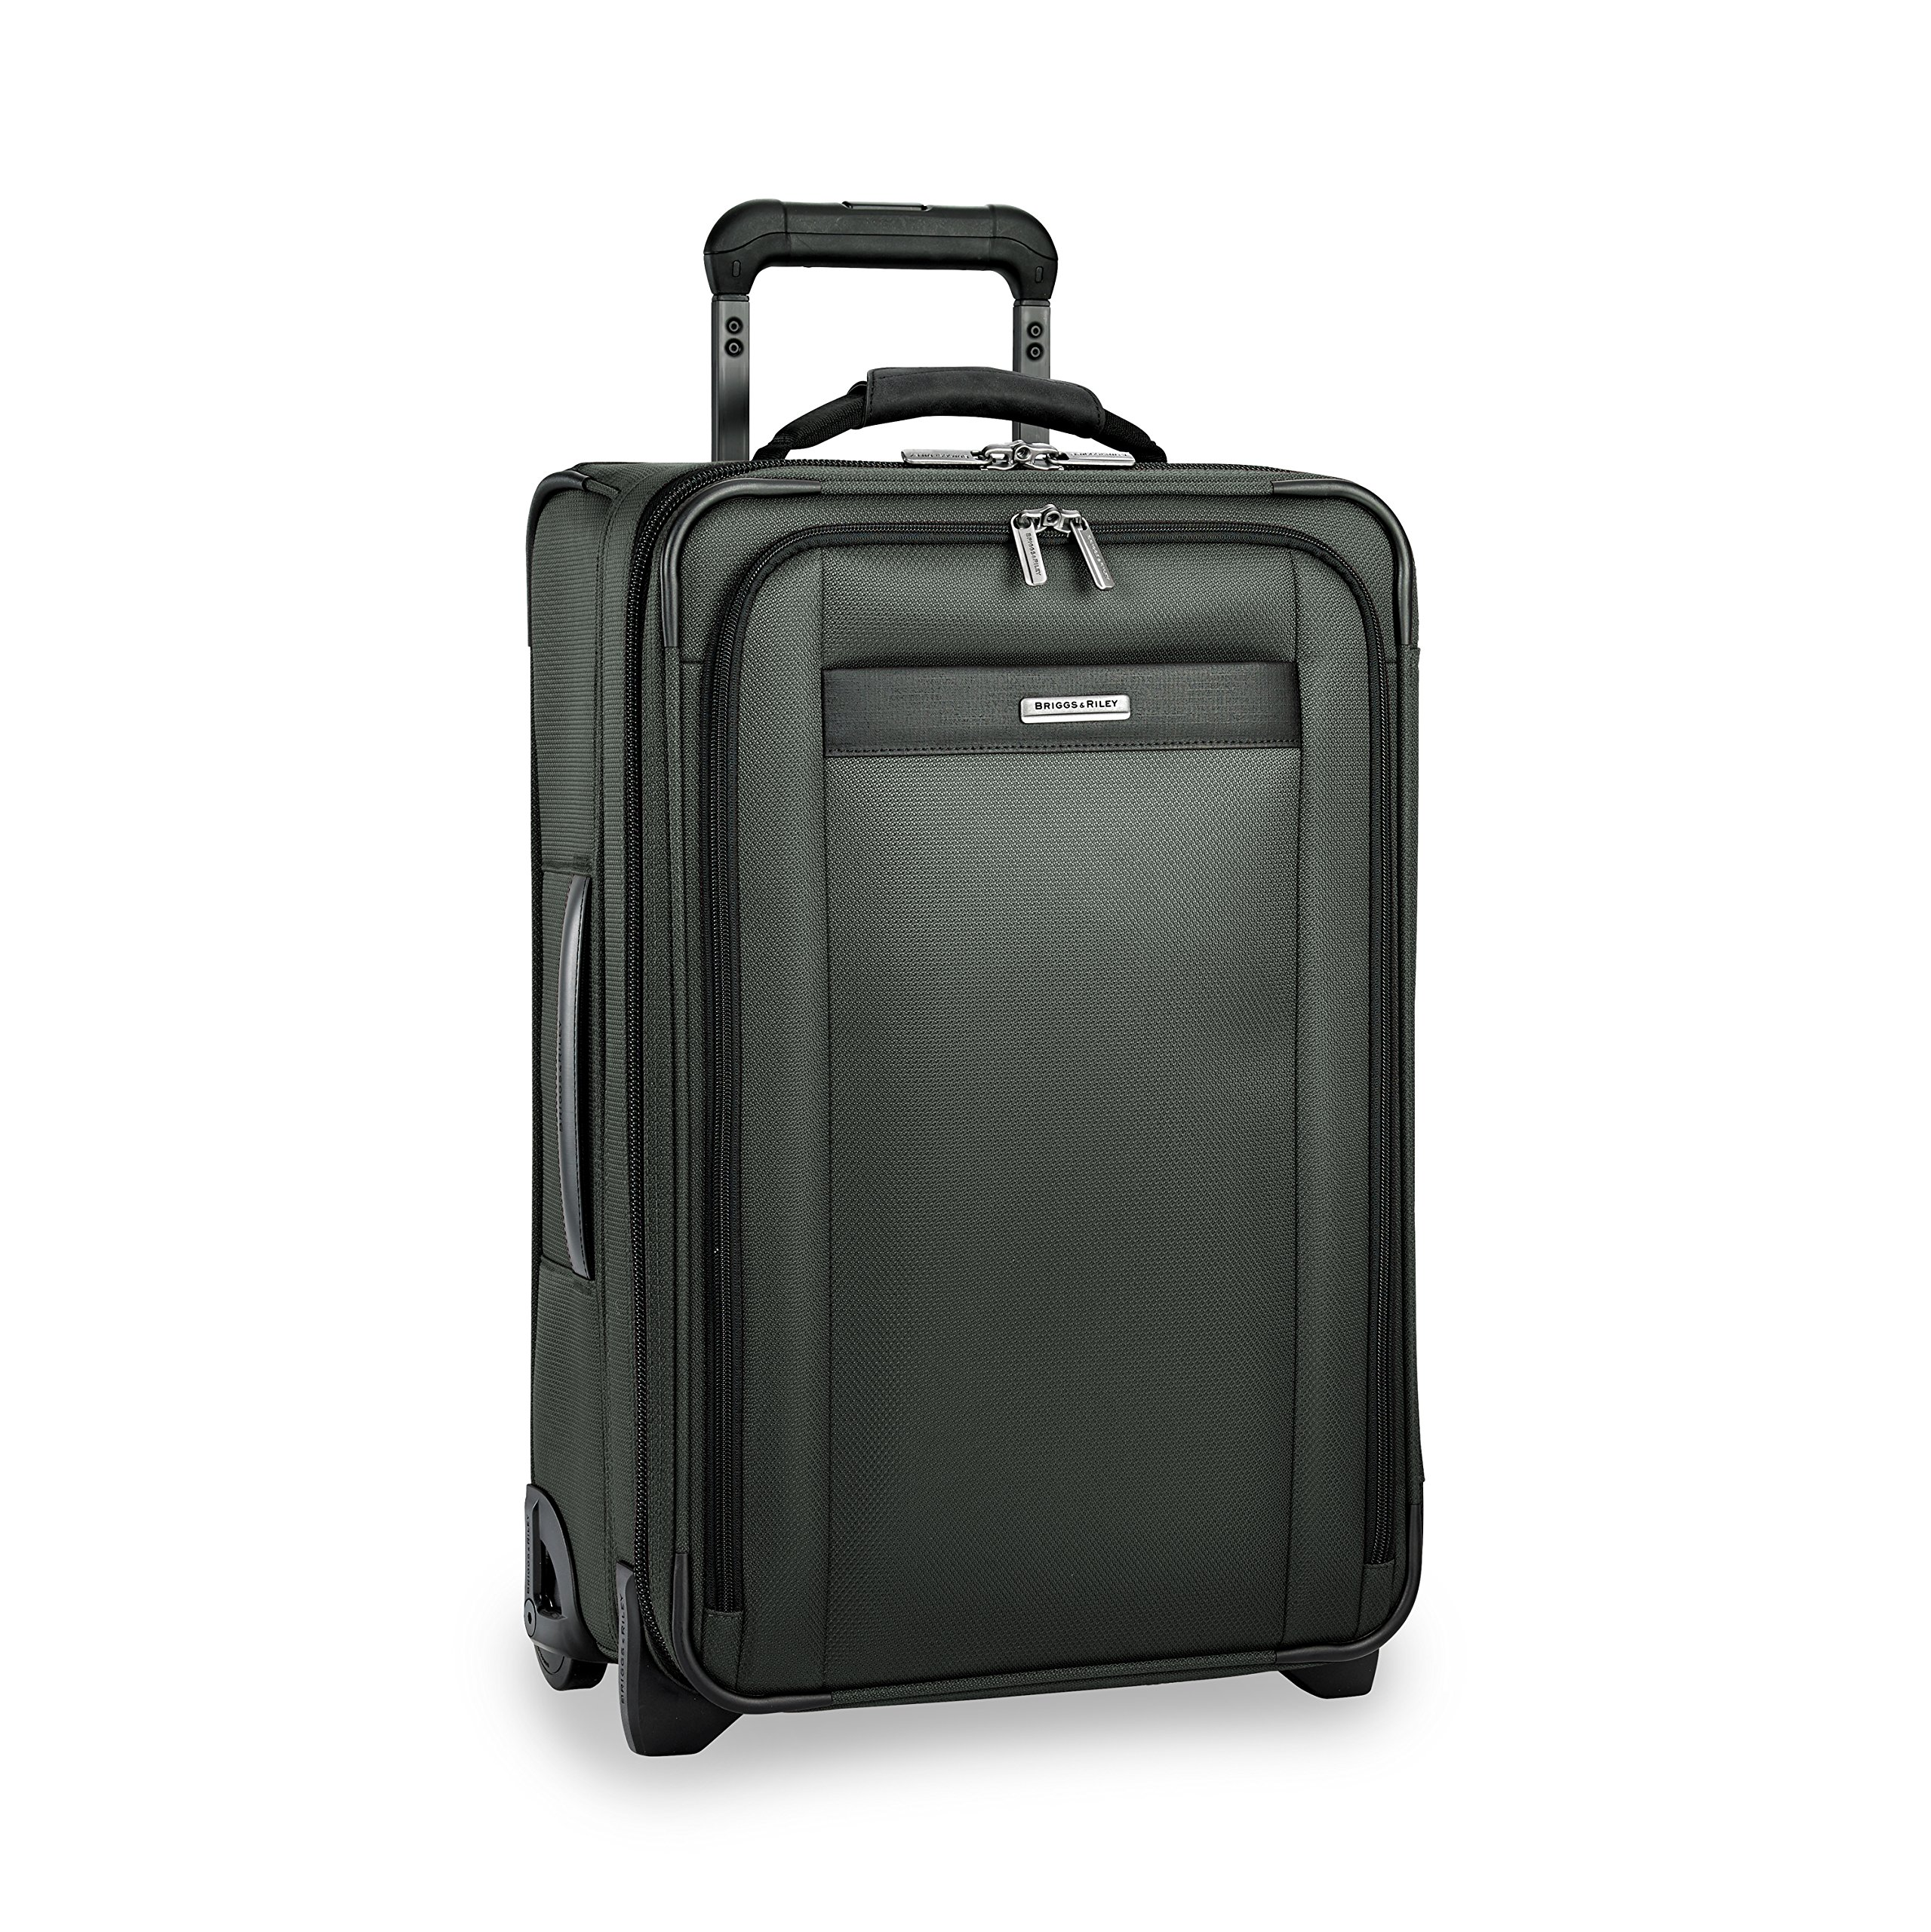 Briggs & Riley Transcend Expandable Carry-On 22'' Upright, Rainforest